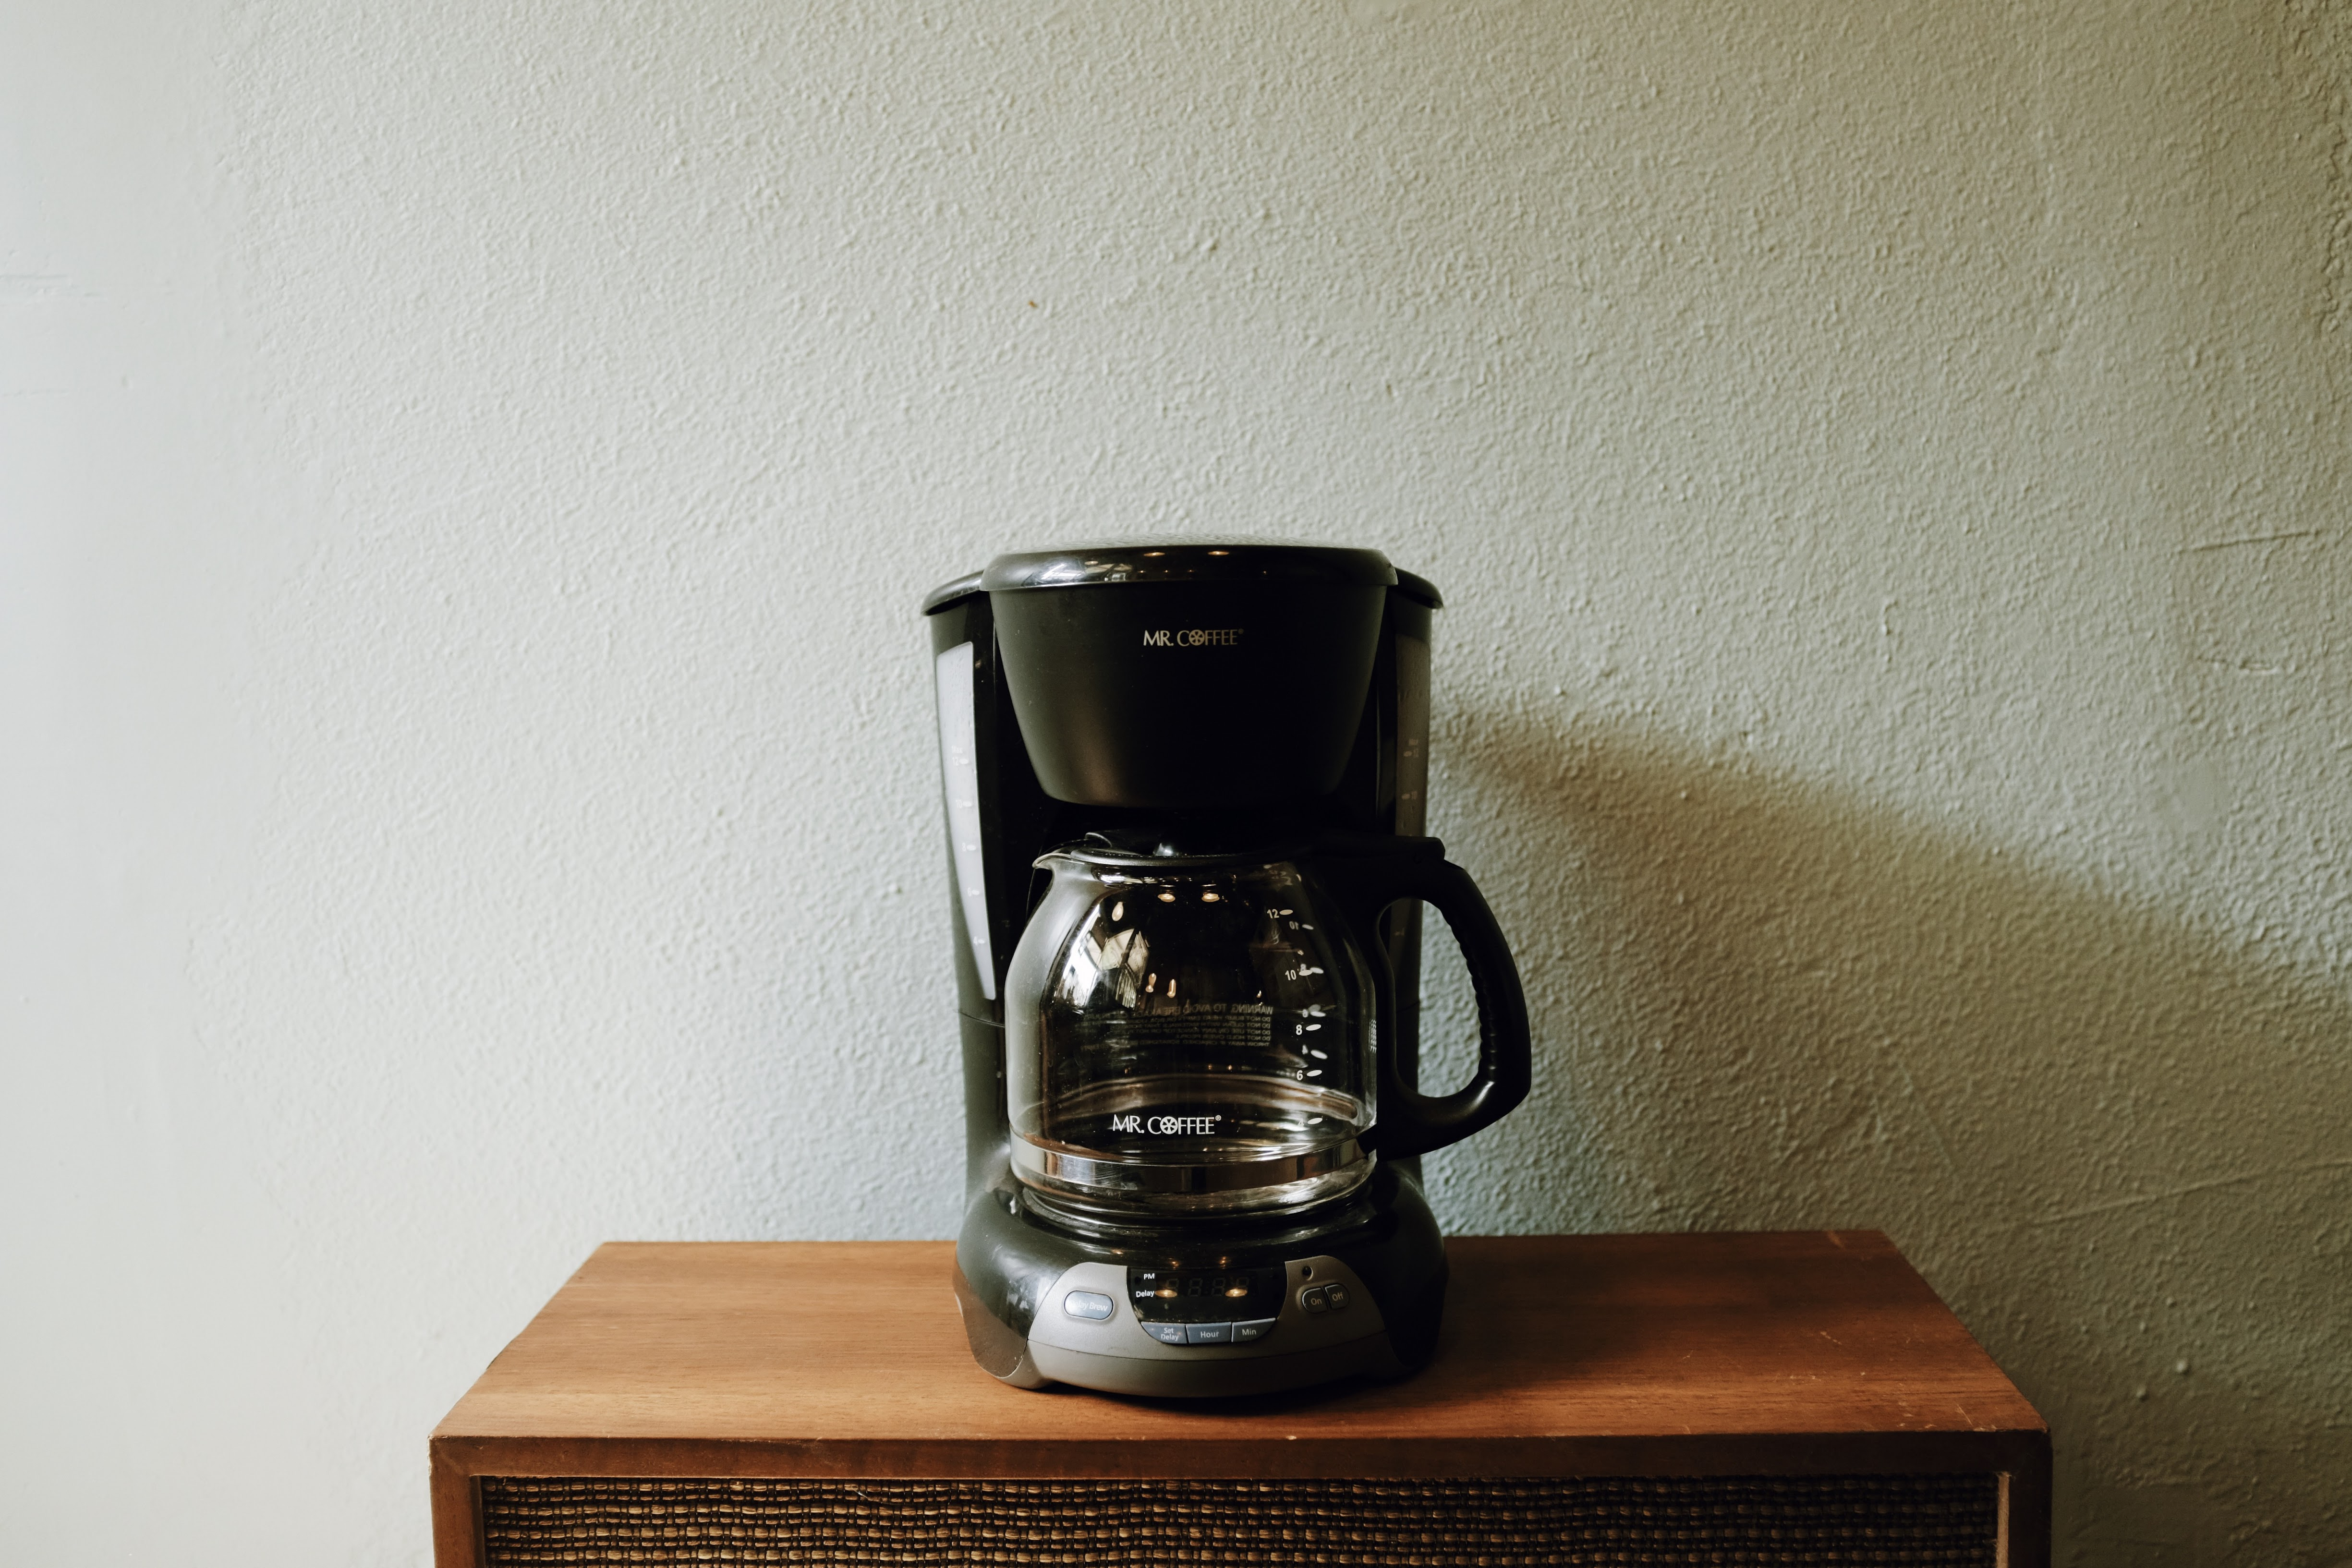 Coffee Makers Auto Drip : Hacking Your Auto-Drip Coffee Maker